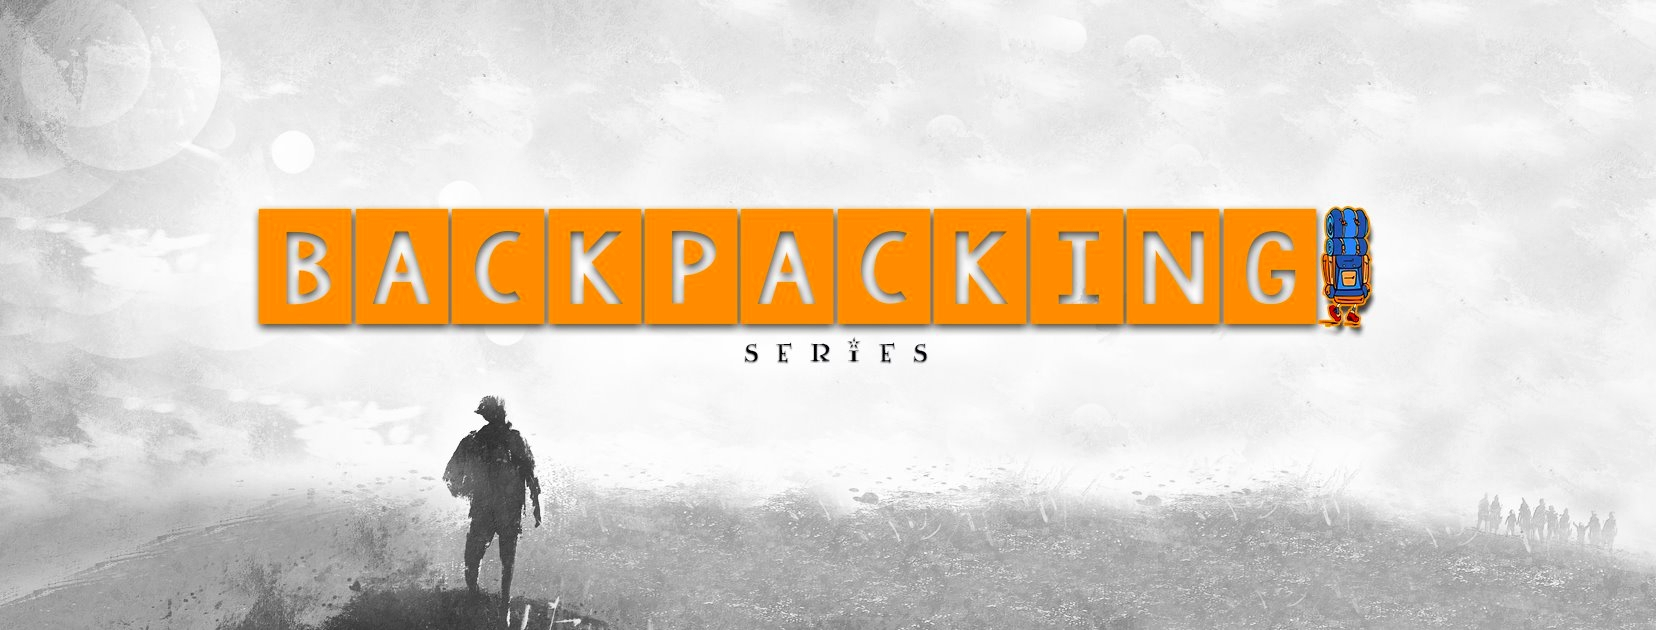 Backpacking Series (@backpackingseries) Cover Image